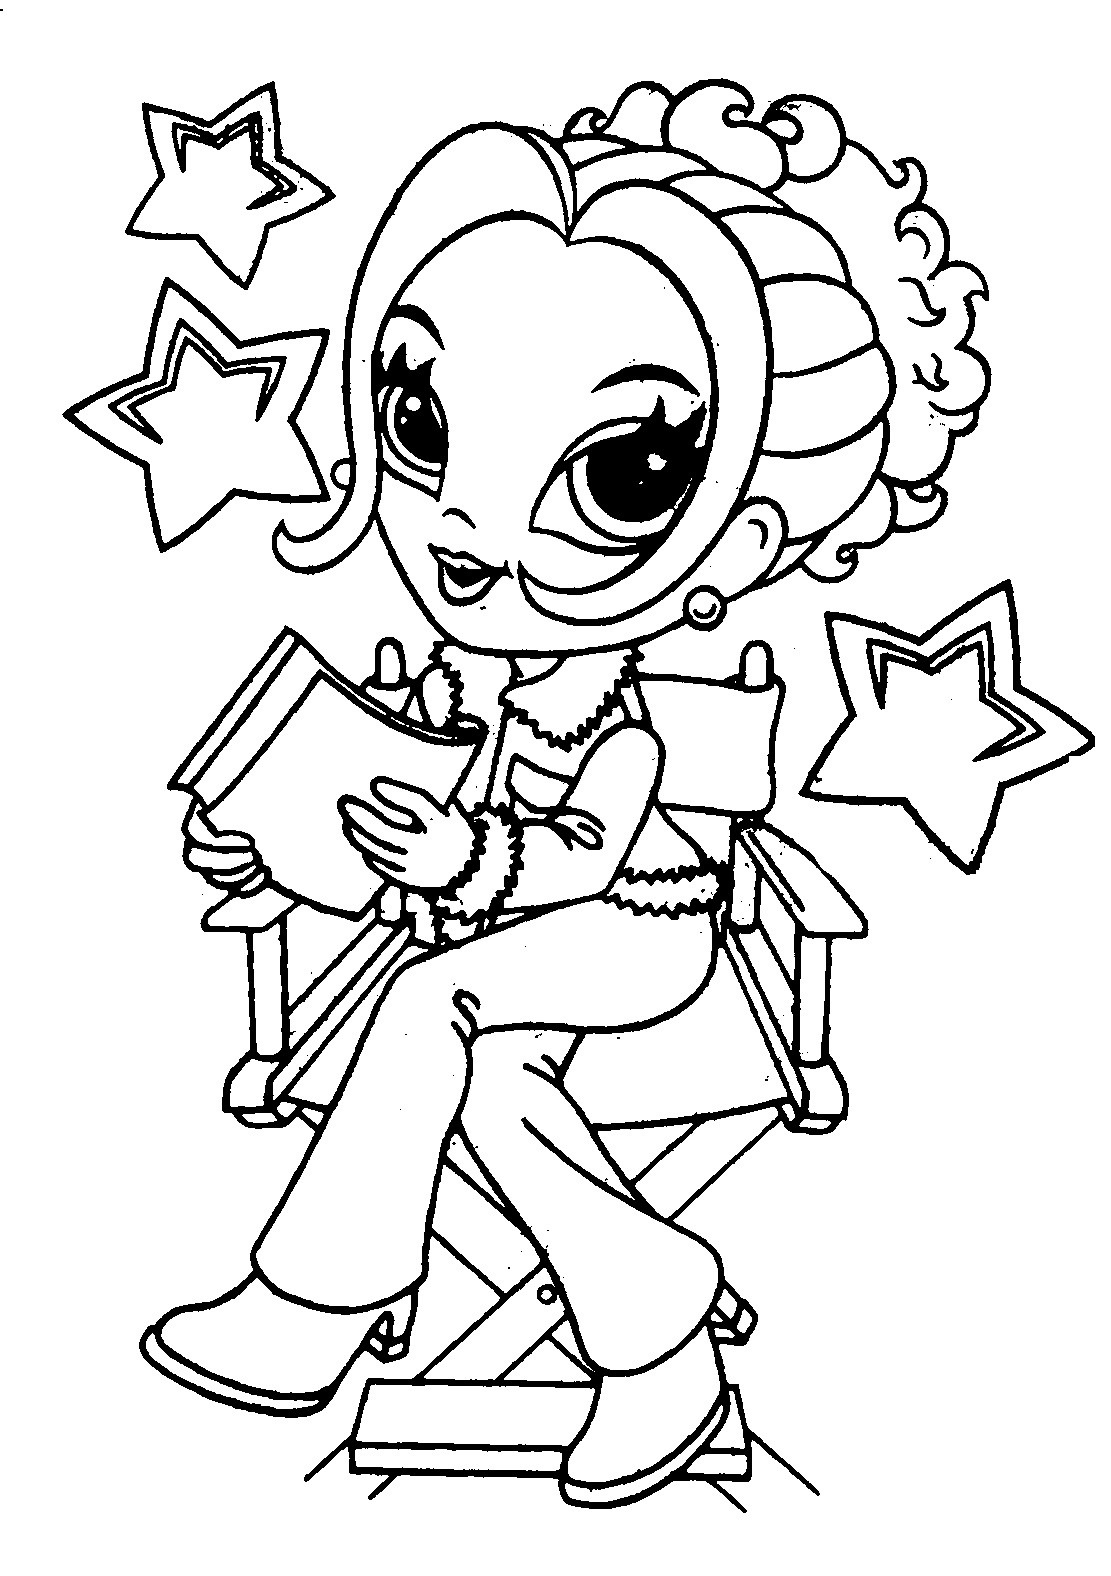 coloring pages for girls (6) - coloring kids - Childrens Coloring Pages Girls